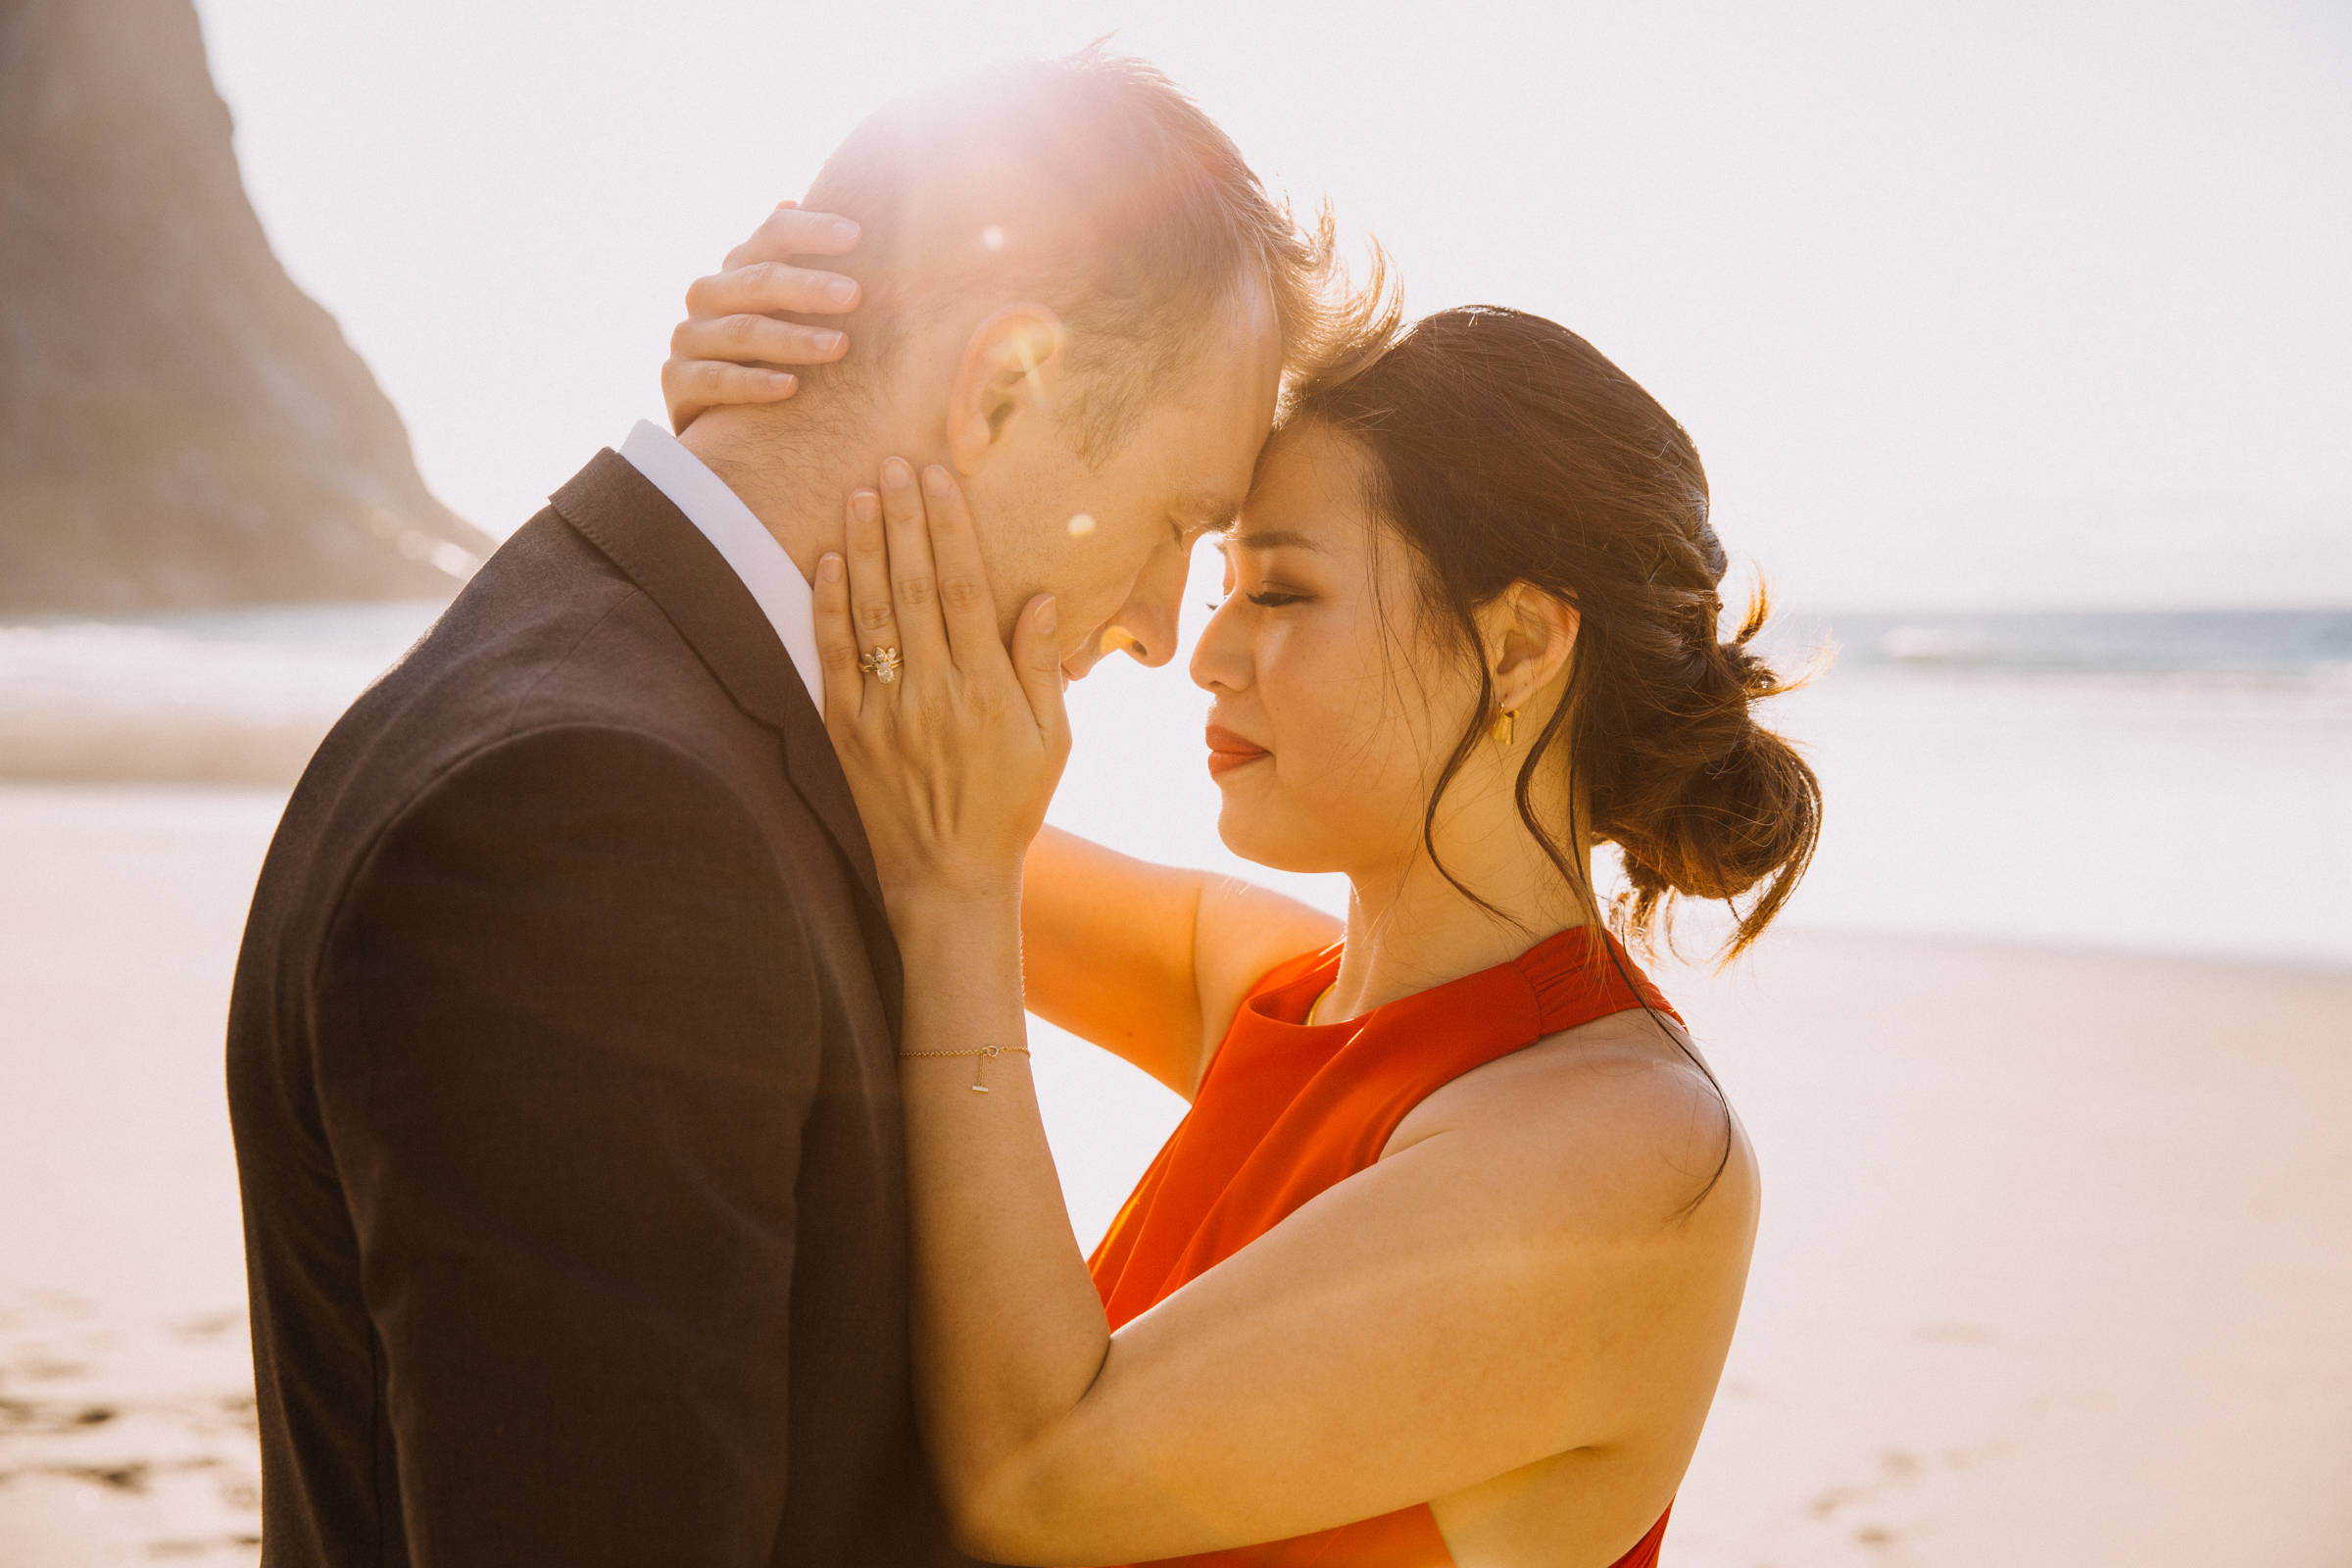 Elopement couple on Lofoten Norway beach bride in red dress  - photo by Christin Eide Photography